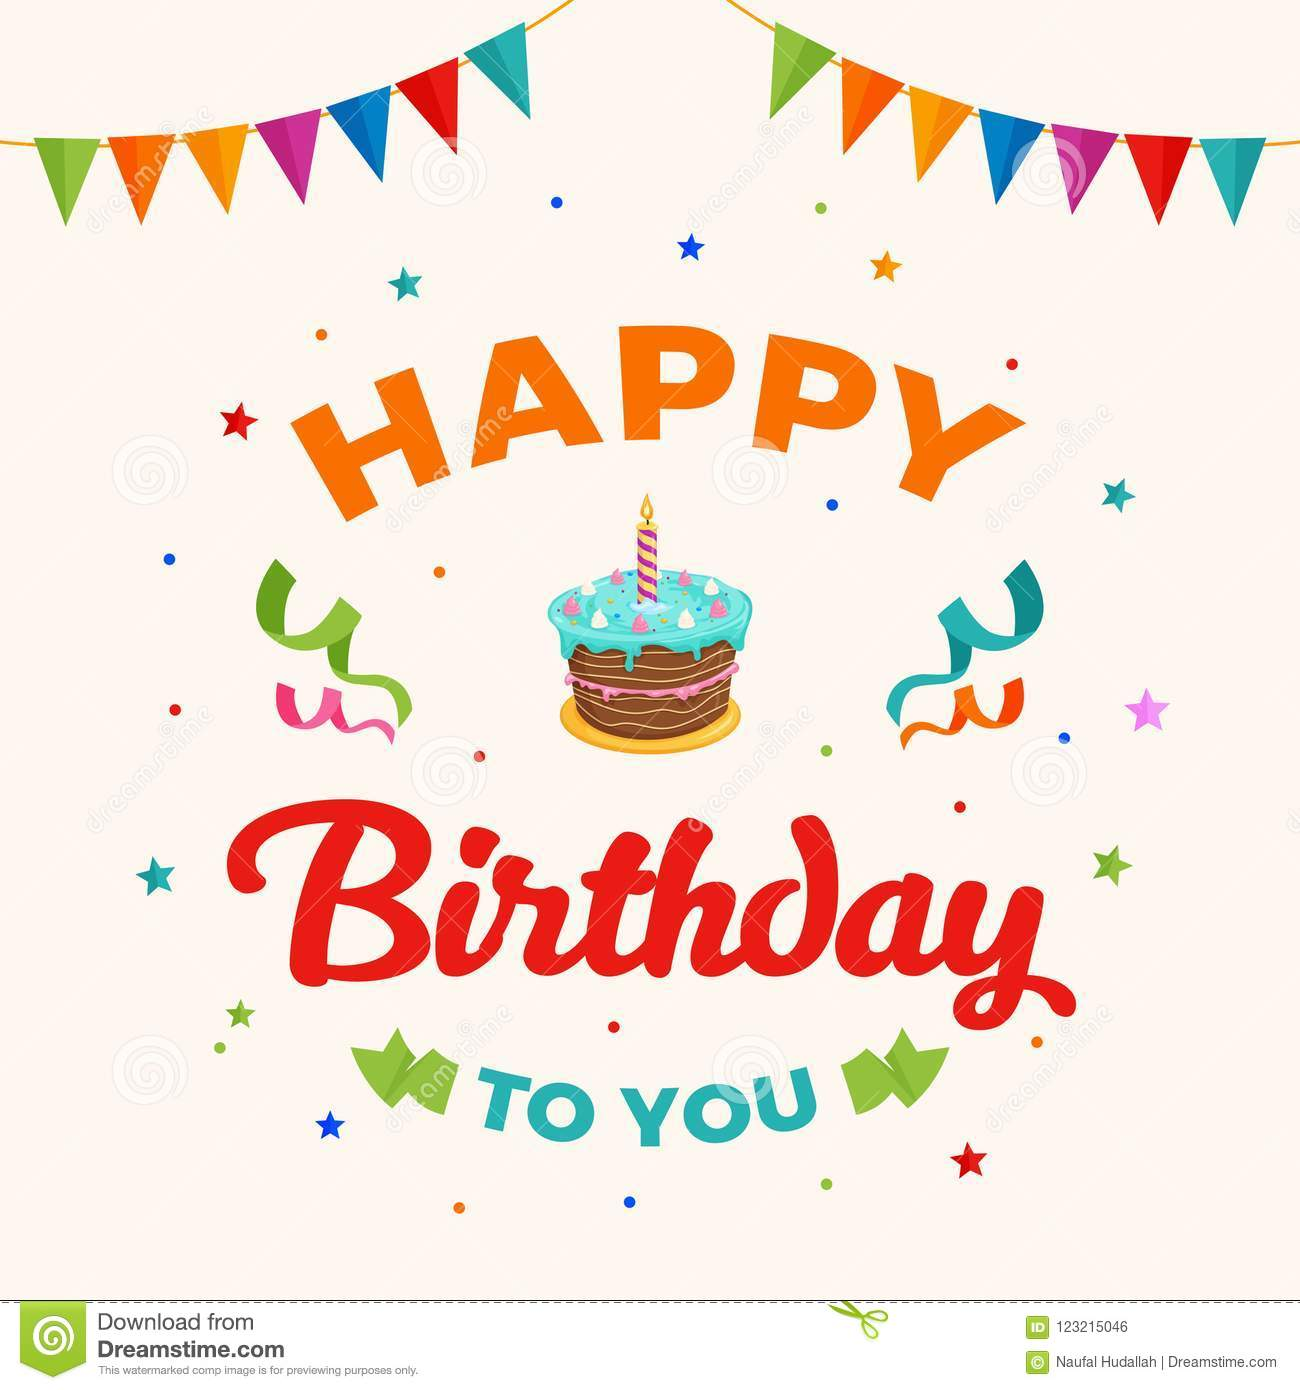 Happy birthday to you background vector. birthday cake illustration with party flag and confetti ornament. Greeting, banner